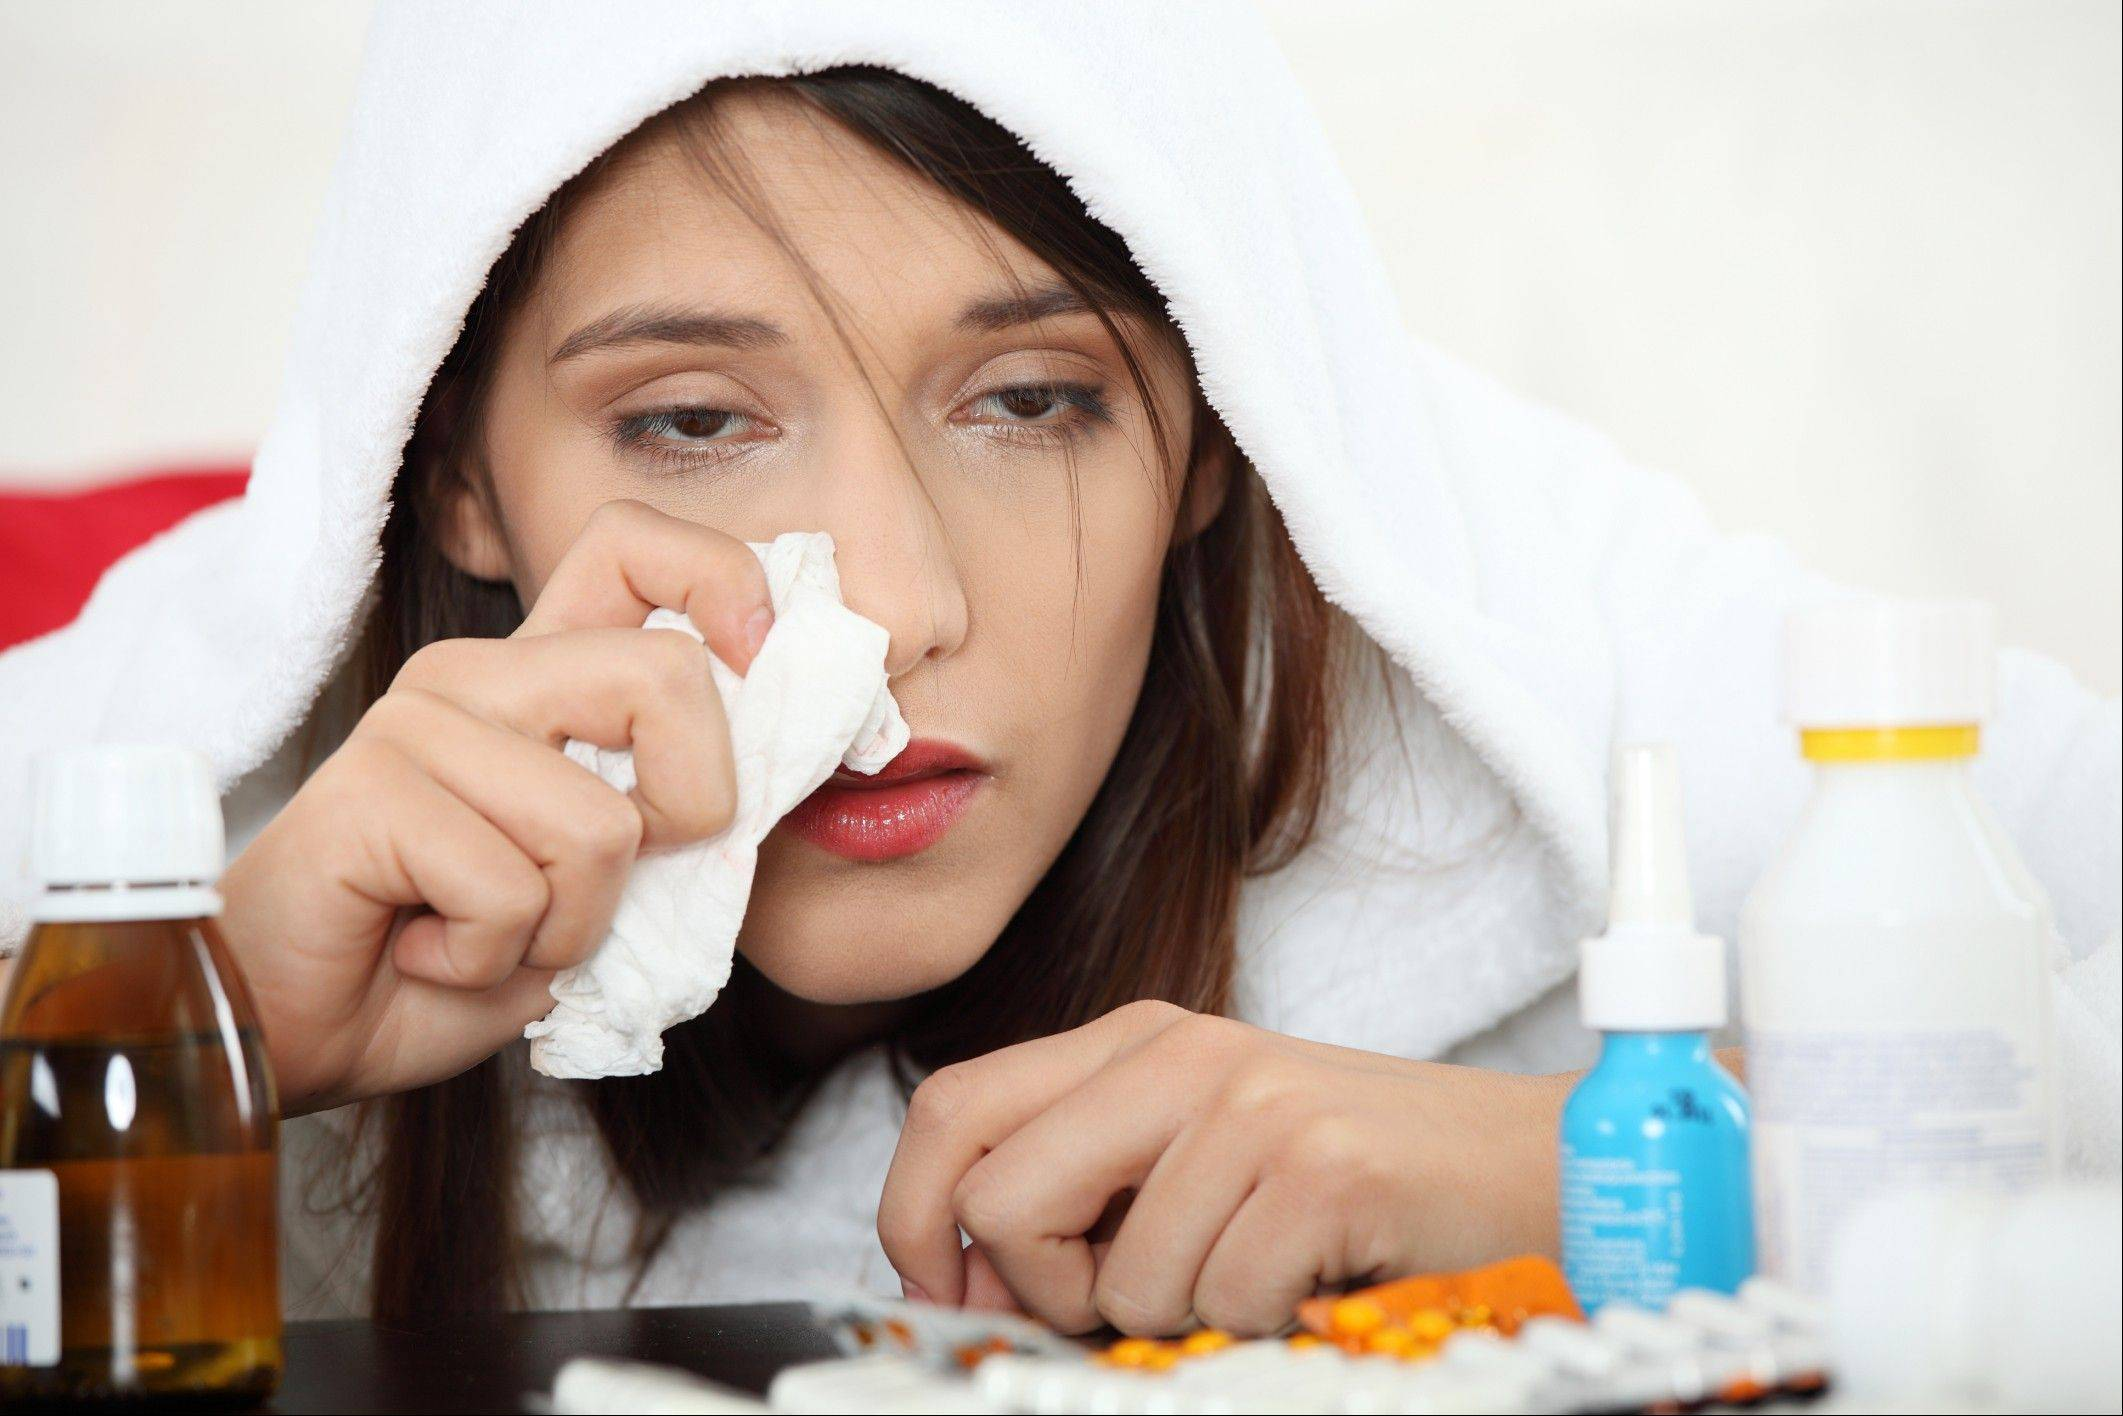 Chances are that someone in your household is feeling under the weather. What cold remedy do you recommend?